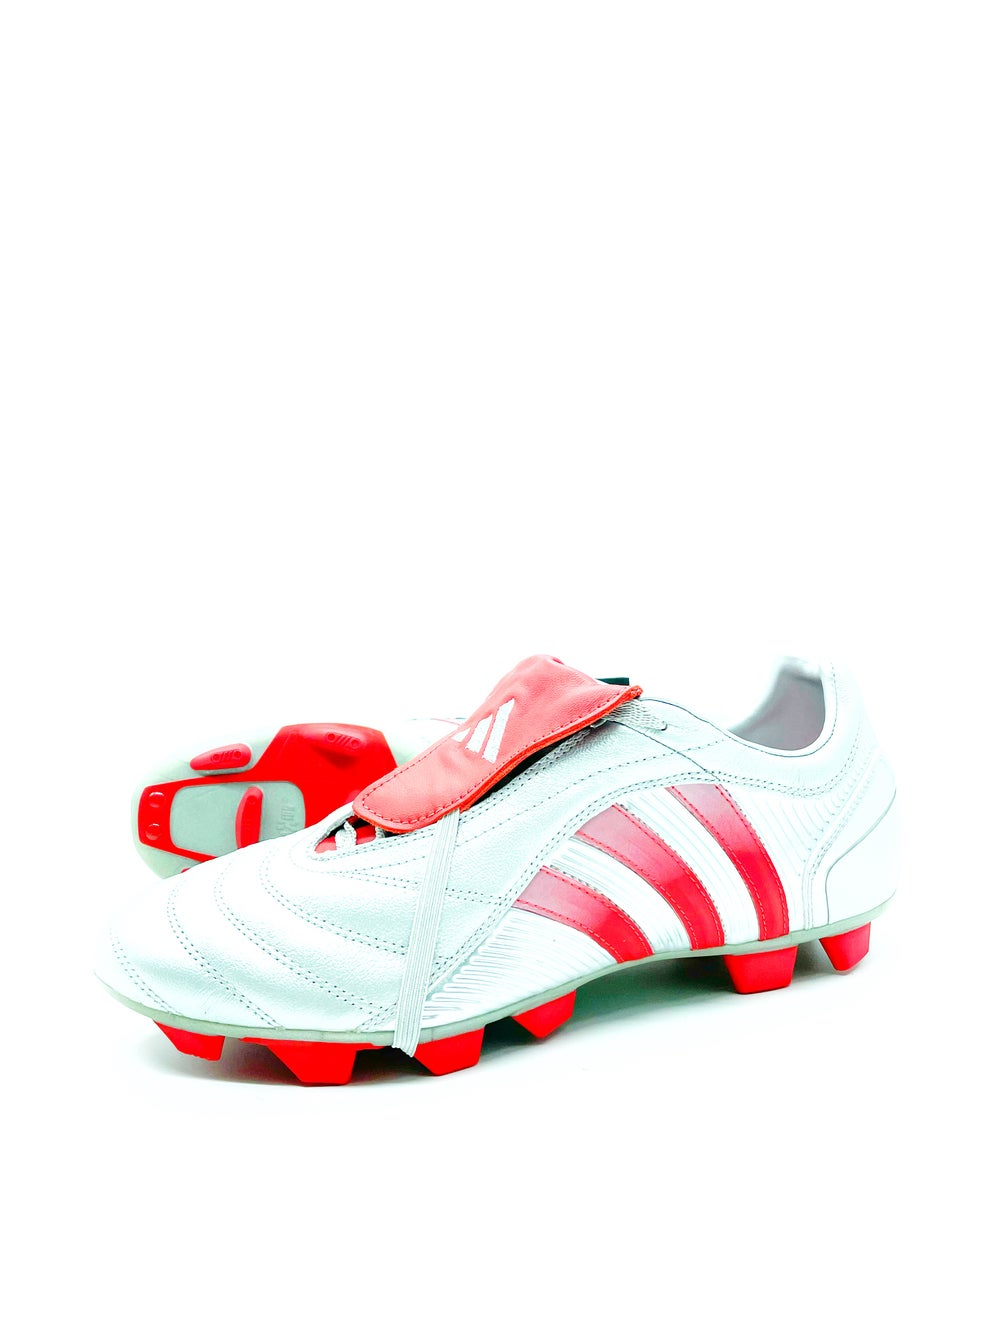 Image of Adidas Predator Pulsion Db